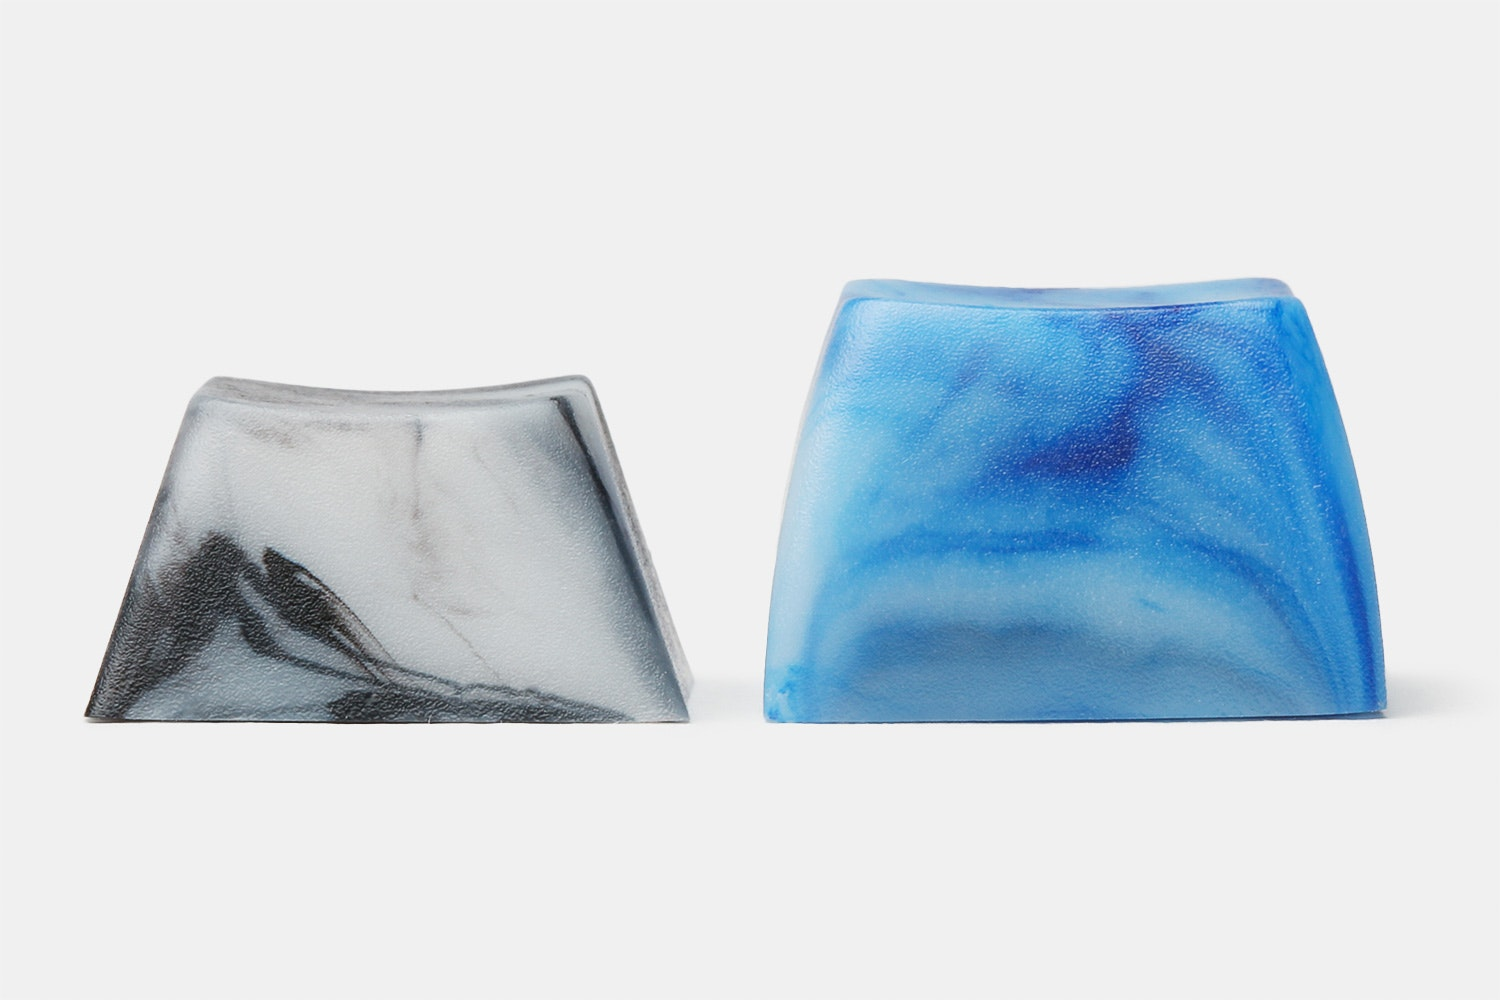 Idea23 Marbled Resin Artisan Keycaps (4-Pack)